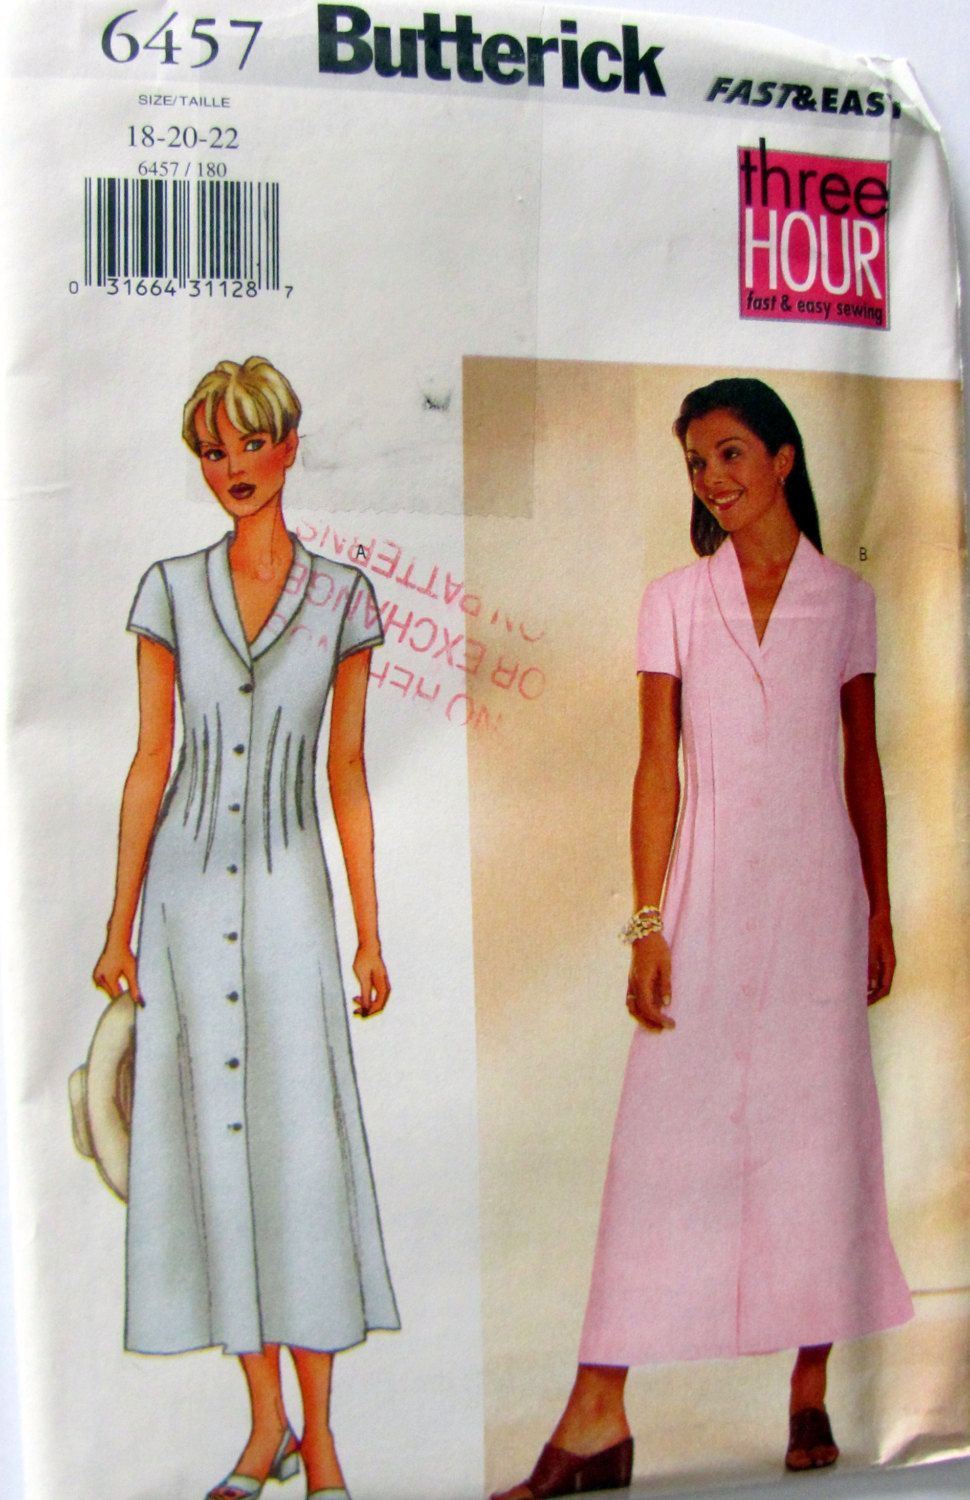 3 Hour Dress, Butterick 6457, Ladies Plus Sizes 18, 20 and 22, Uncut, Bust Size 40 to 44 Inches by OnceUponAnHeirloom on Etsy